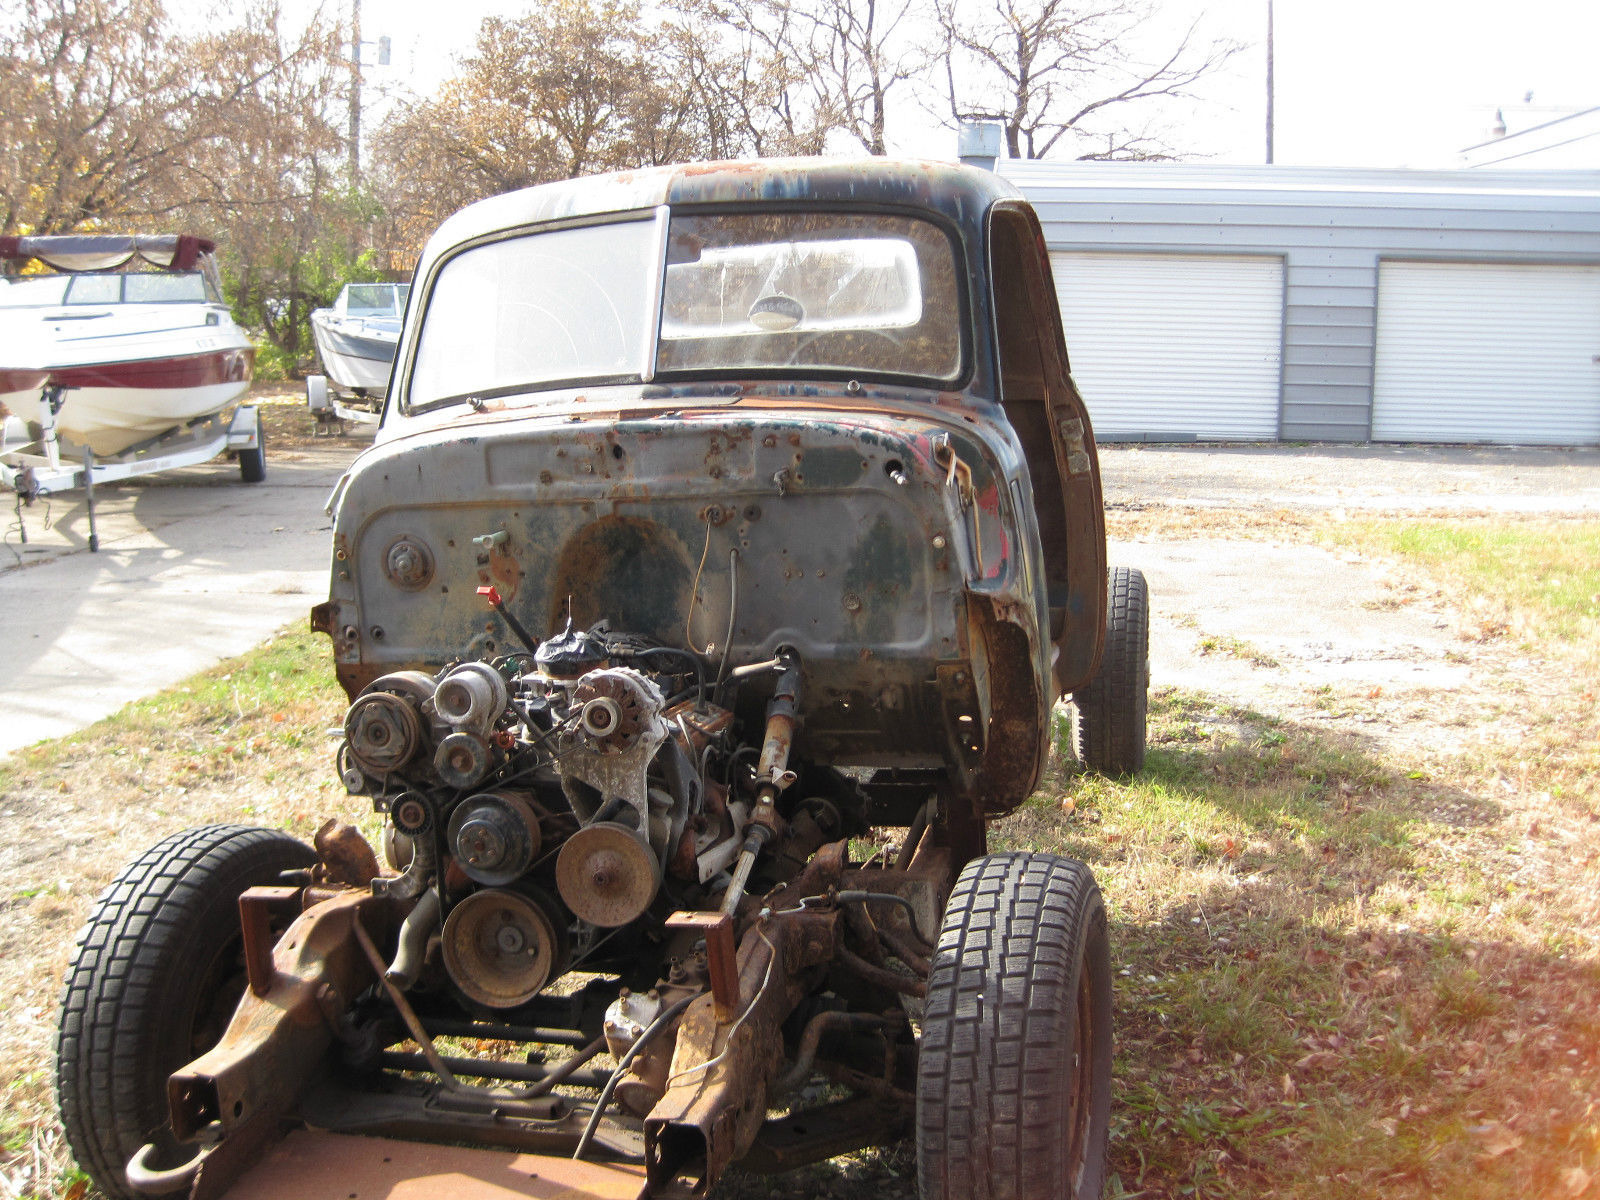 1949 Chevy Pickup 4x4 Texas Truck For Sale In Livonia Michigan Parts Chevrolet Other Pickups